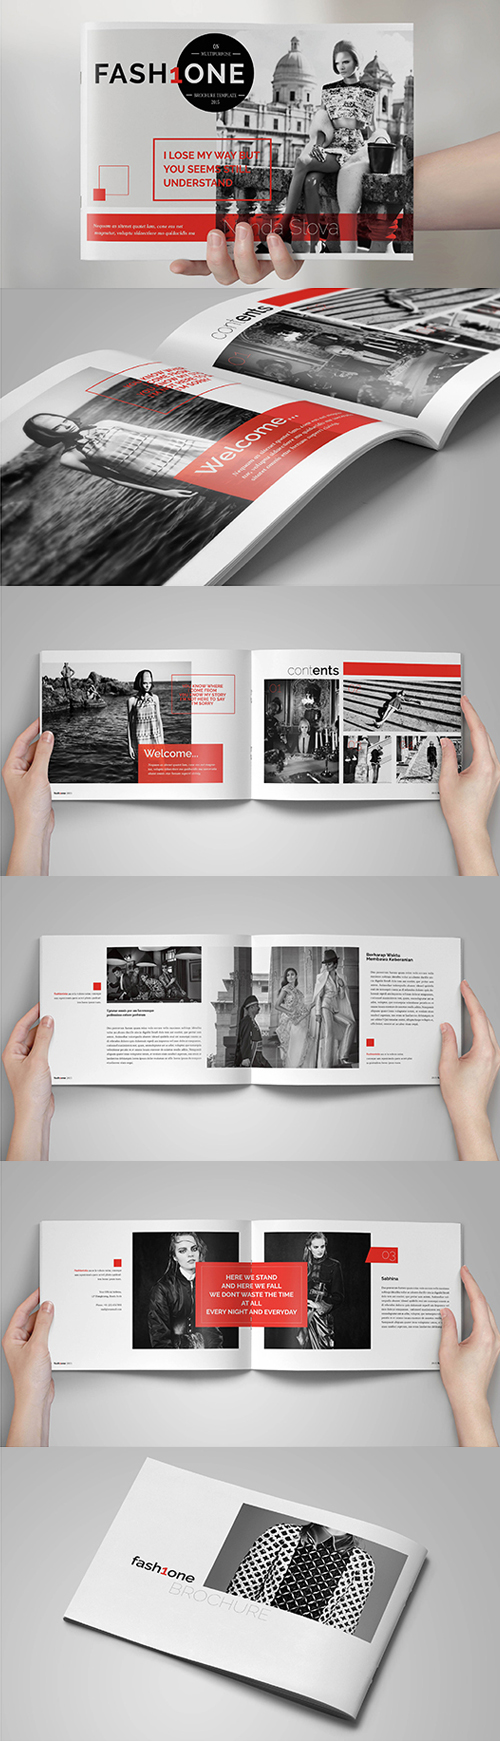 Multipurpose Fashion Brochure Template